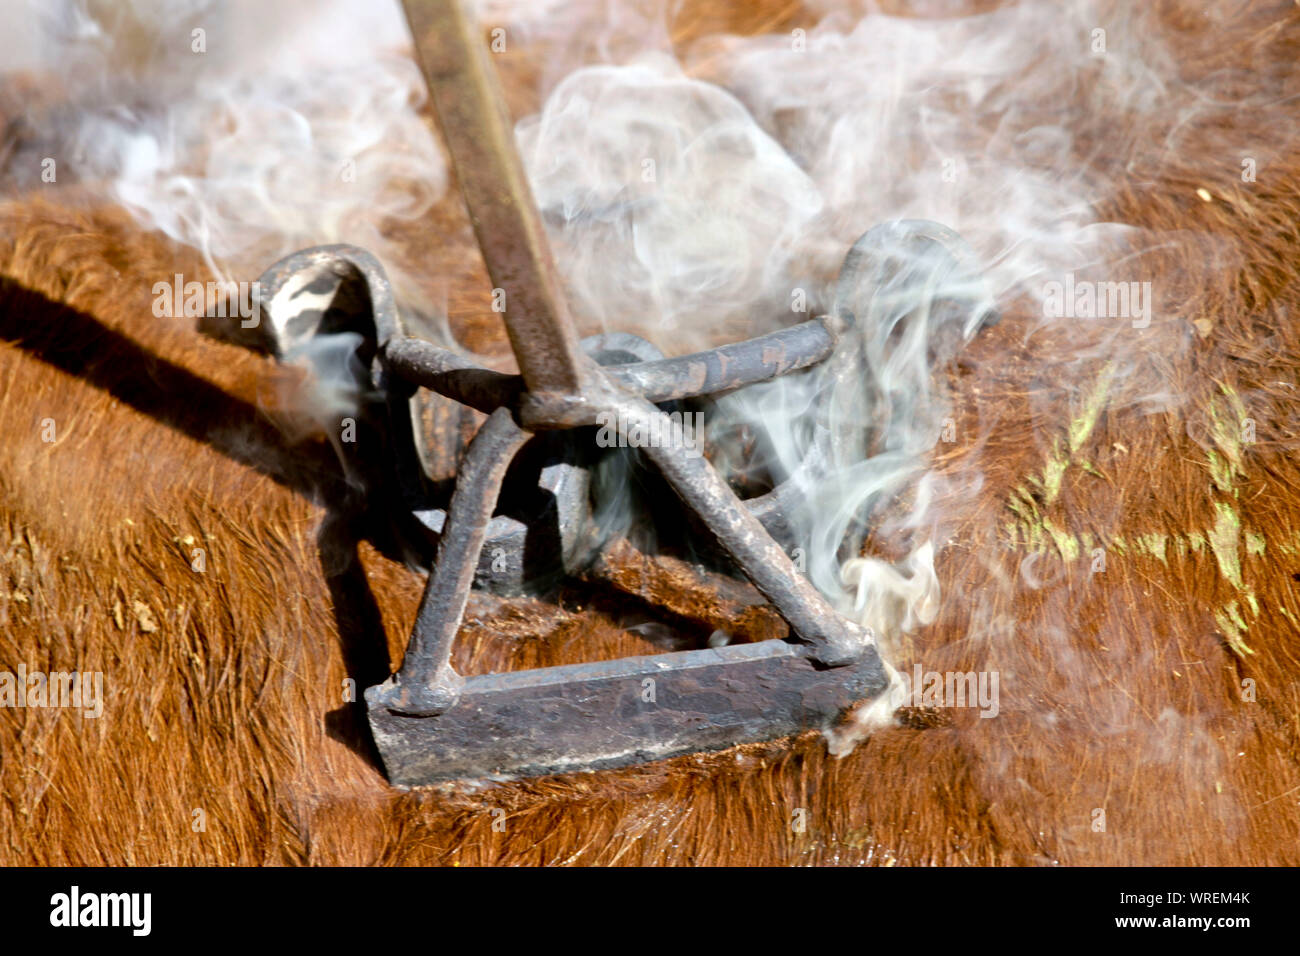 Cattle branding on a remote West Texas ranch. Stock Photo